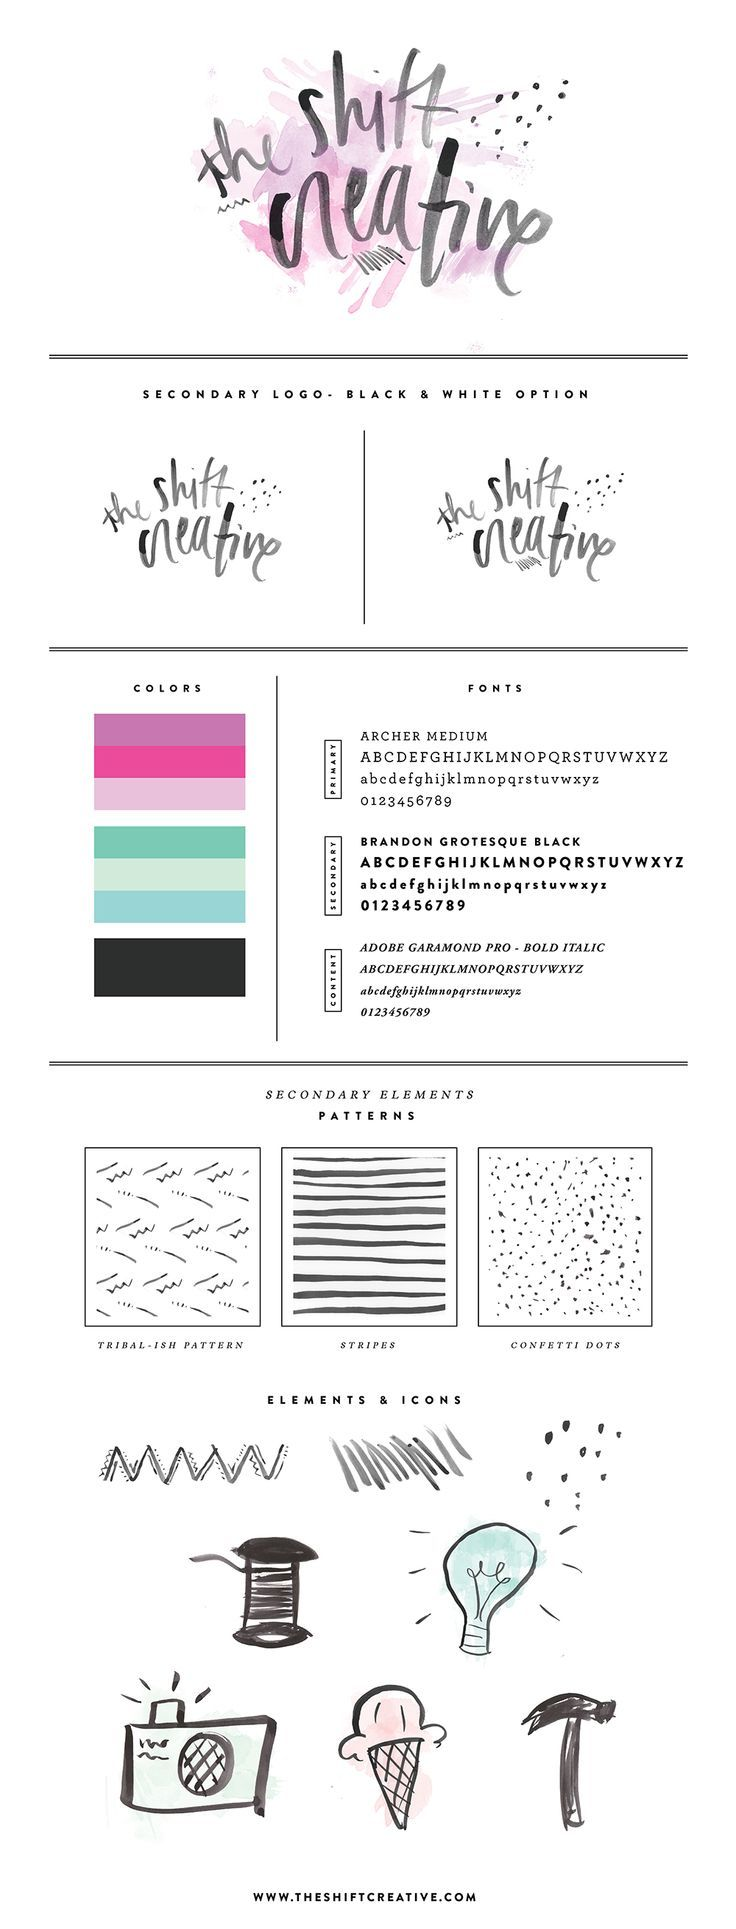 hand drawn elements: The Shift Creative, by Kayla Adams || theshiftcreative.com